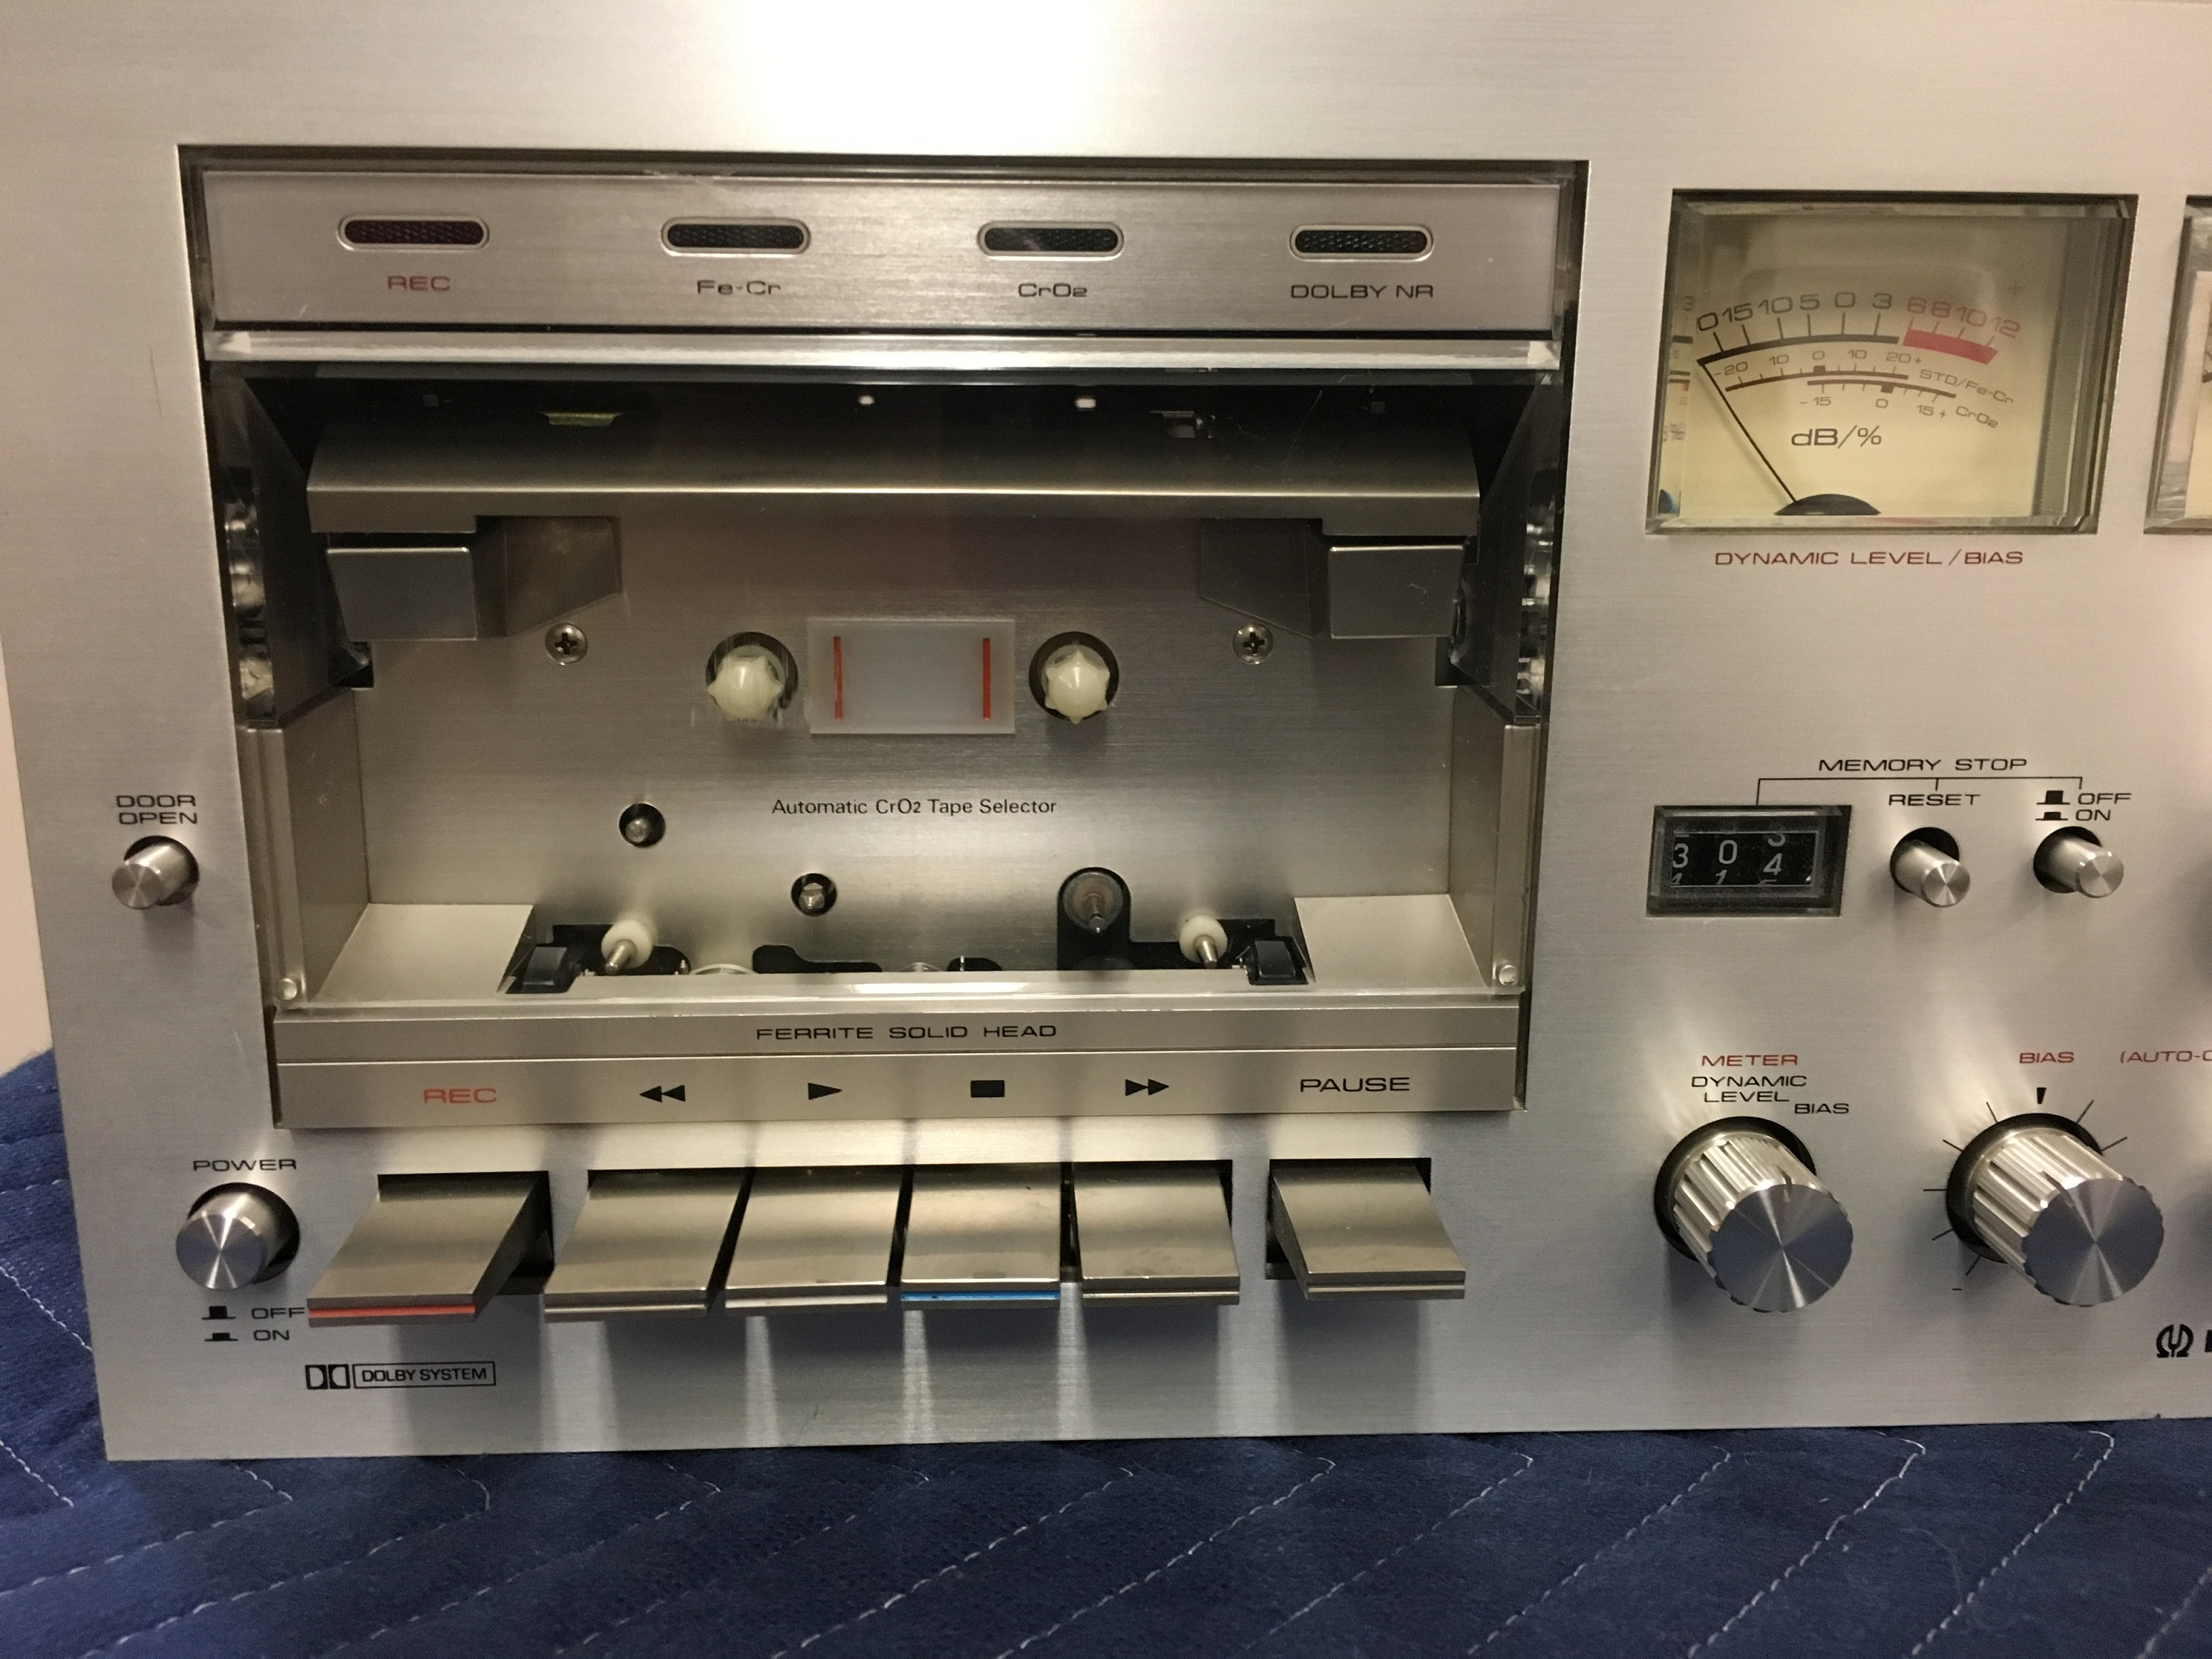 Pioneer CT-F700 stereo cassette tape deck